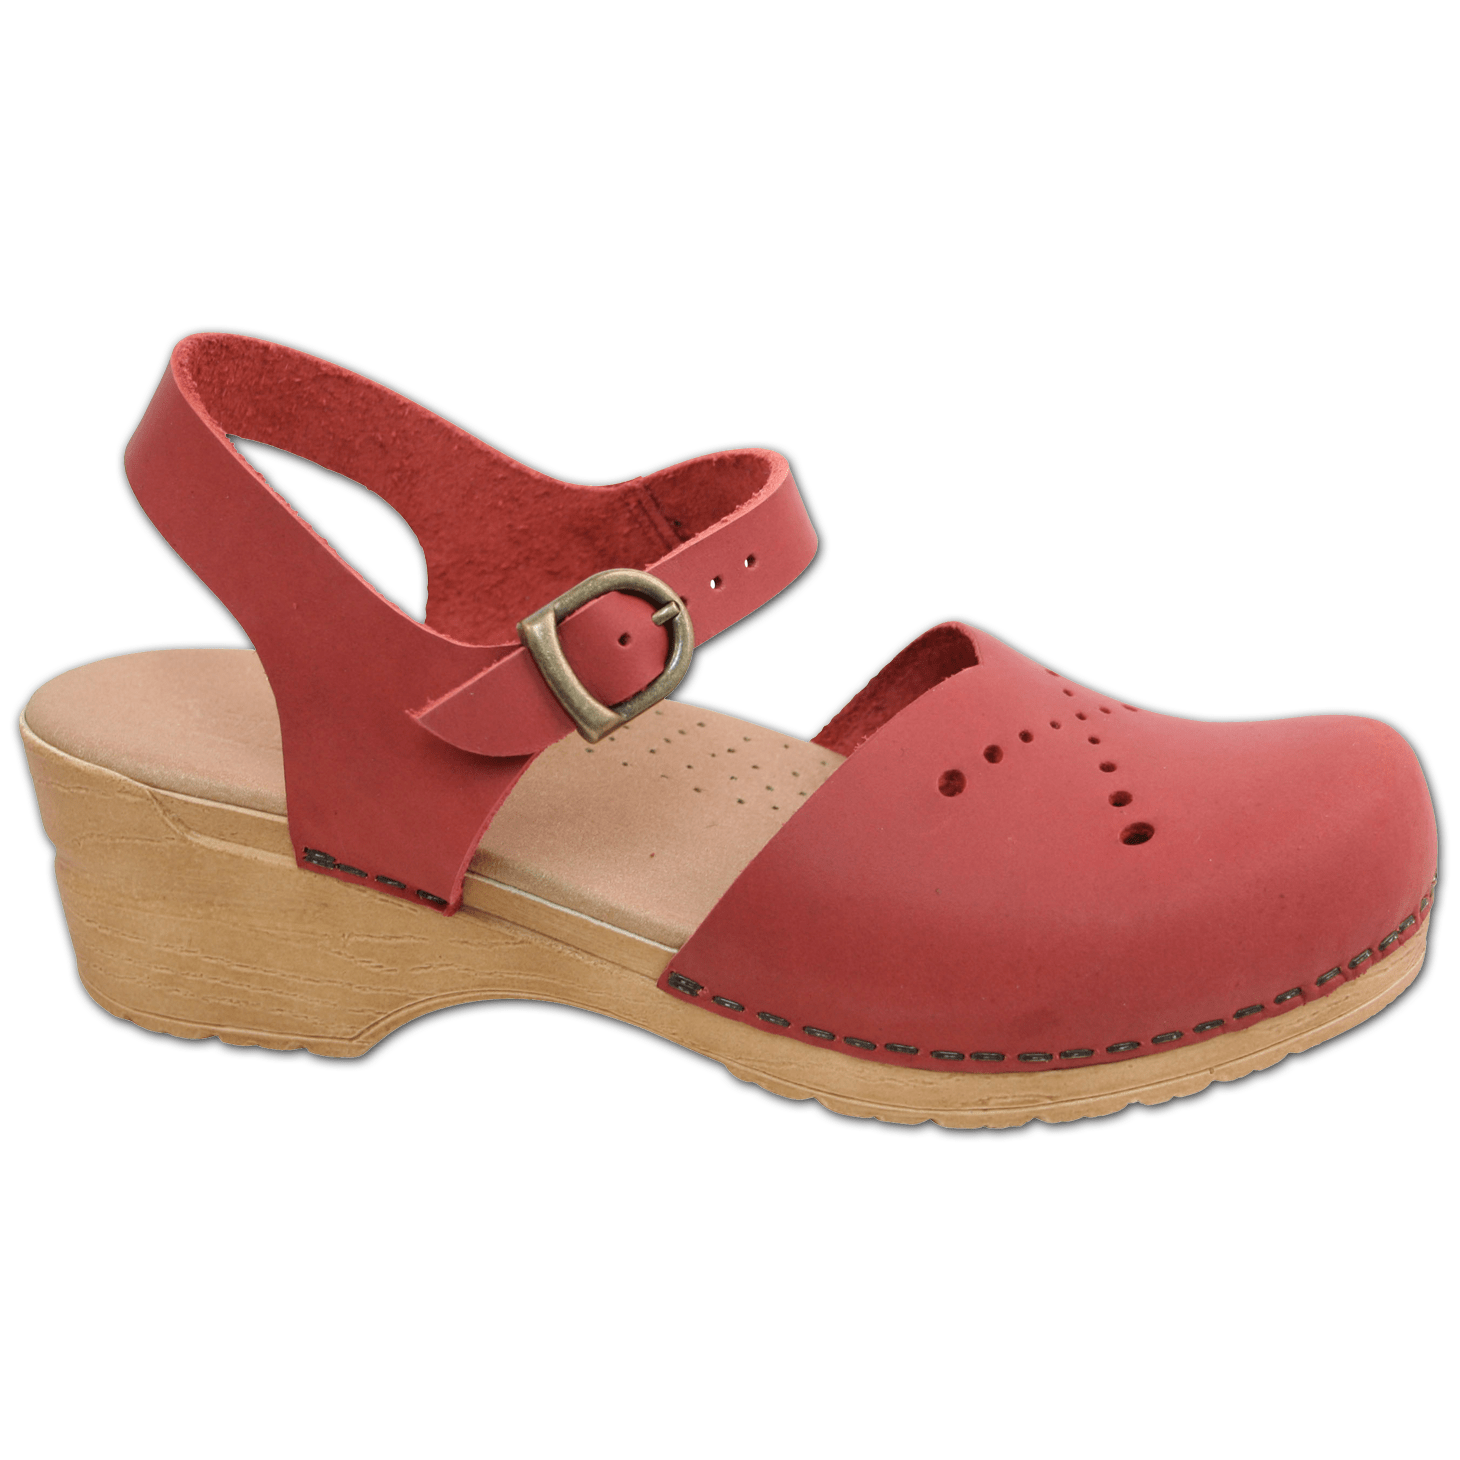 Sanita Crawford Women's in Red Sandal